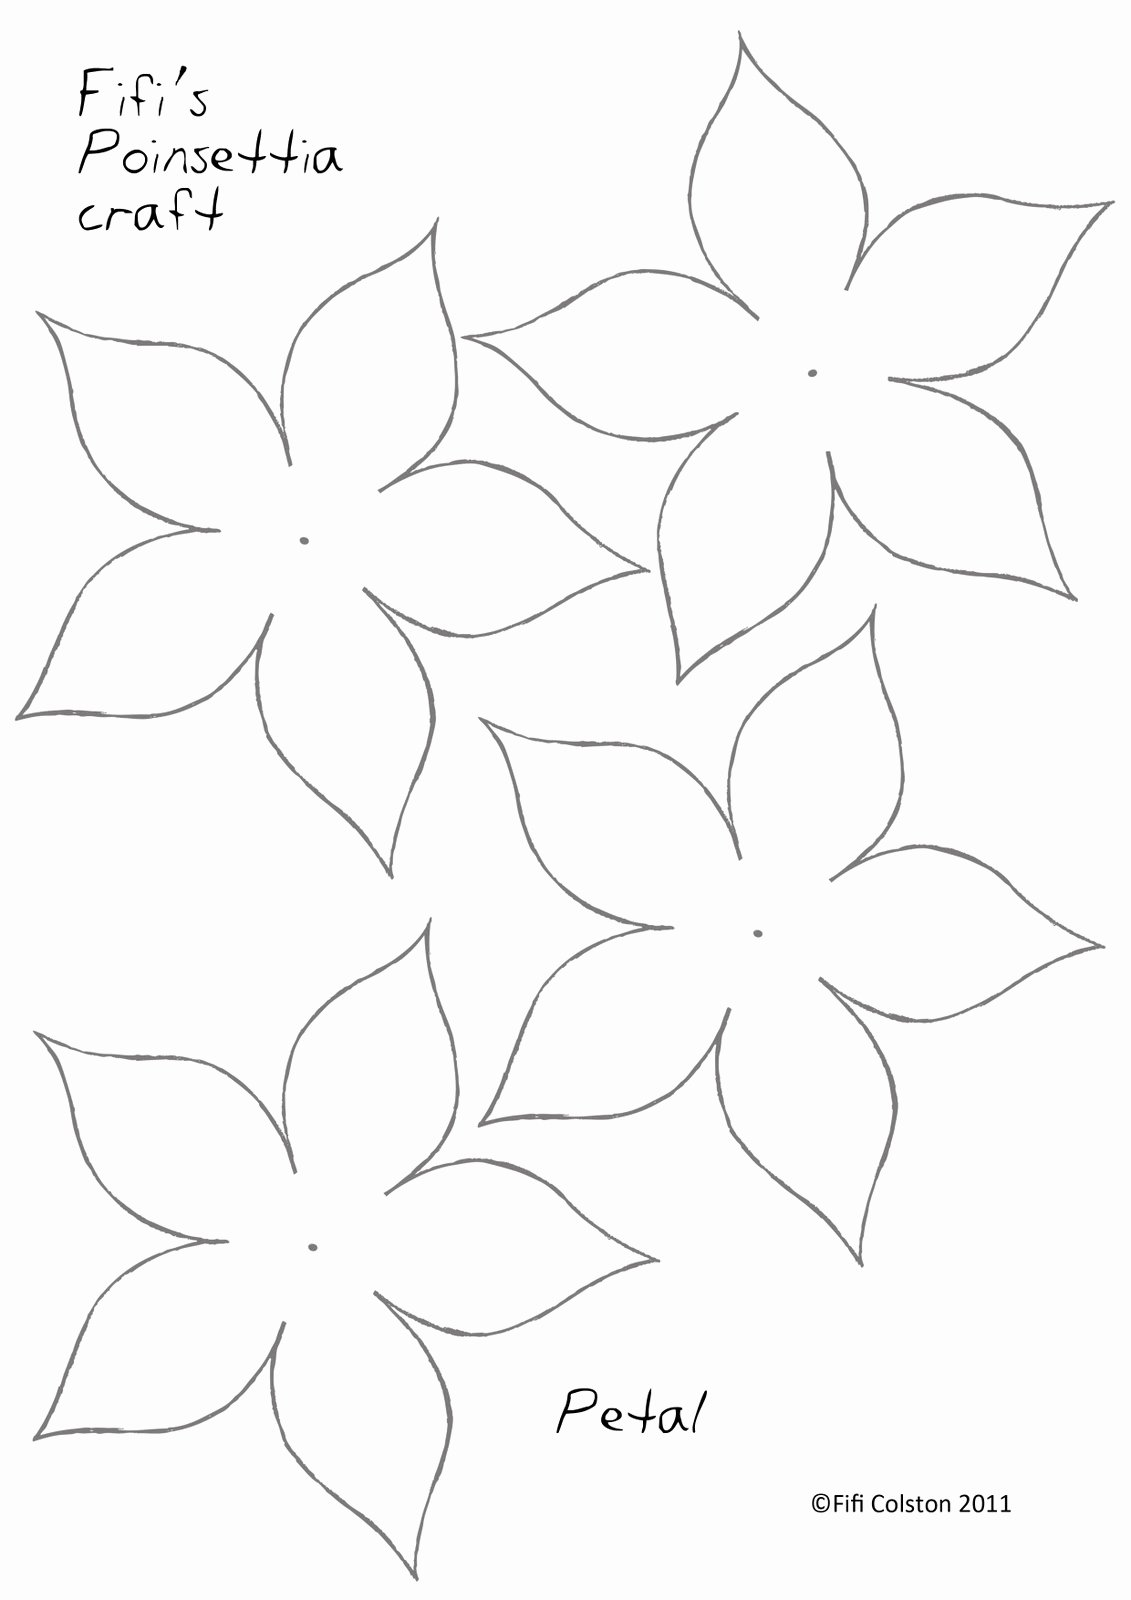 Paper Flower Templates to Print Fresh Fifi Colston Creative Pretty Paper Poinsettias